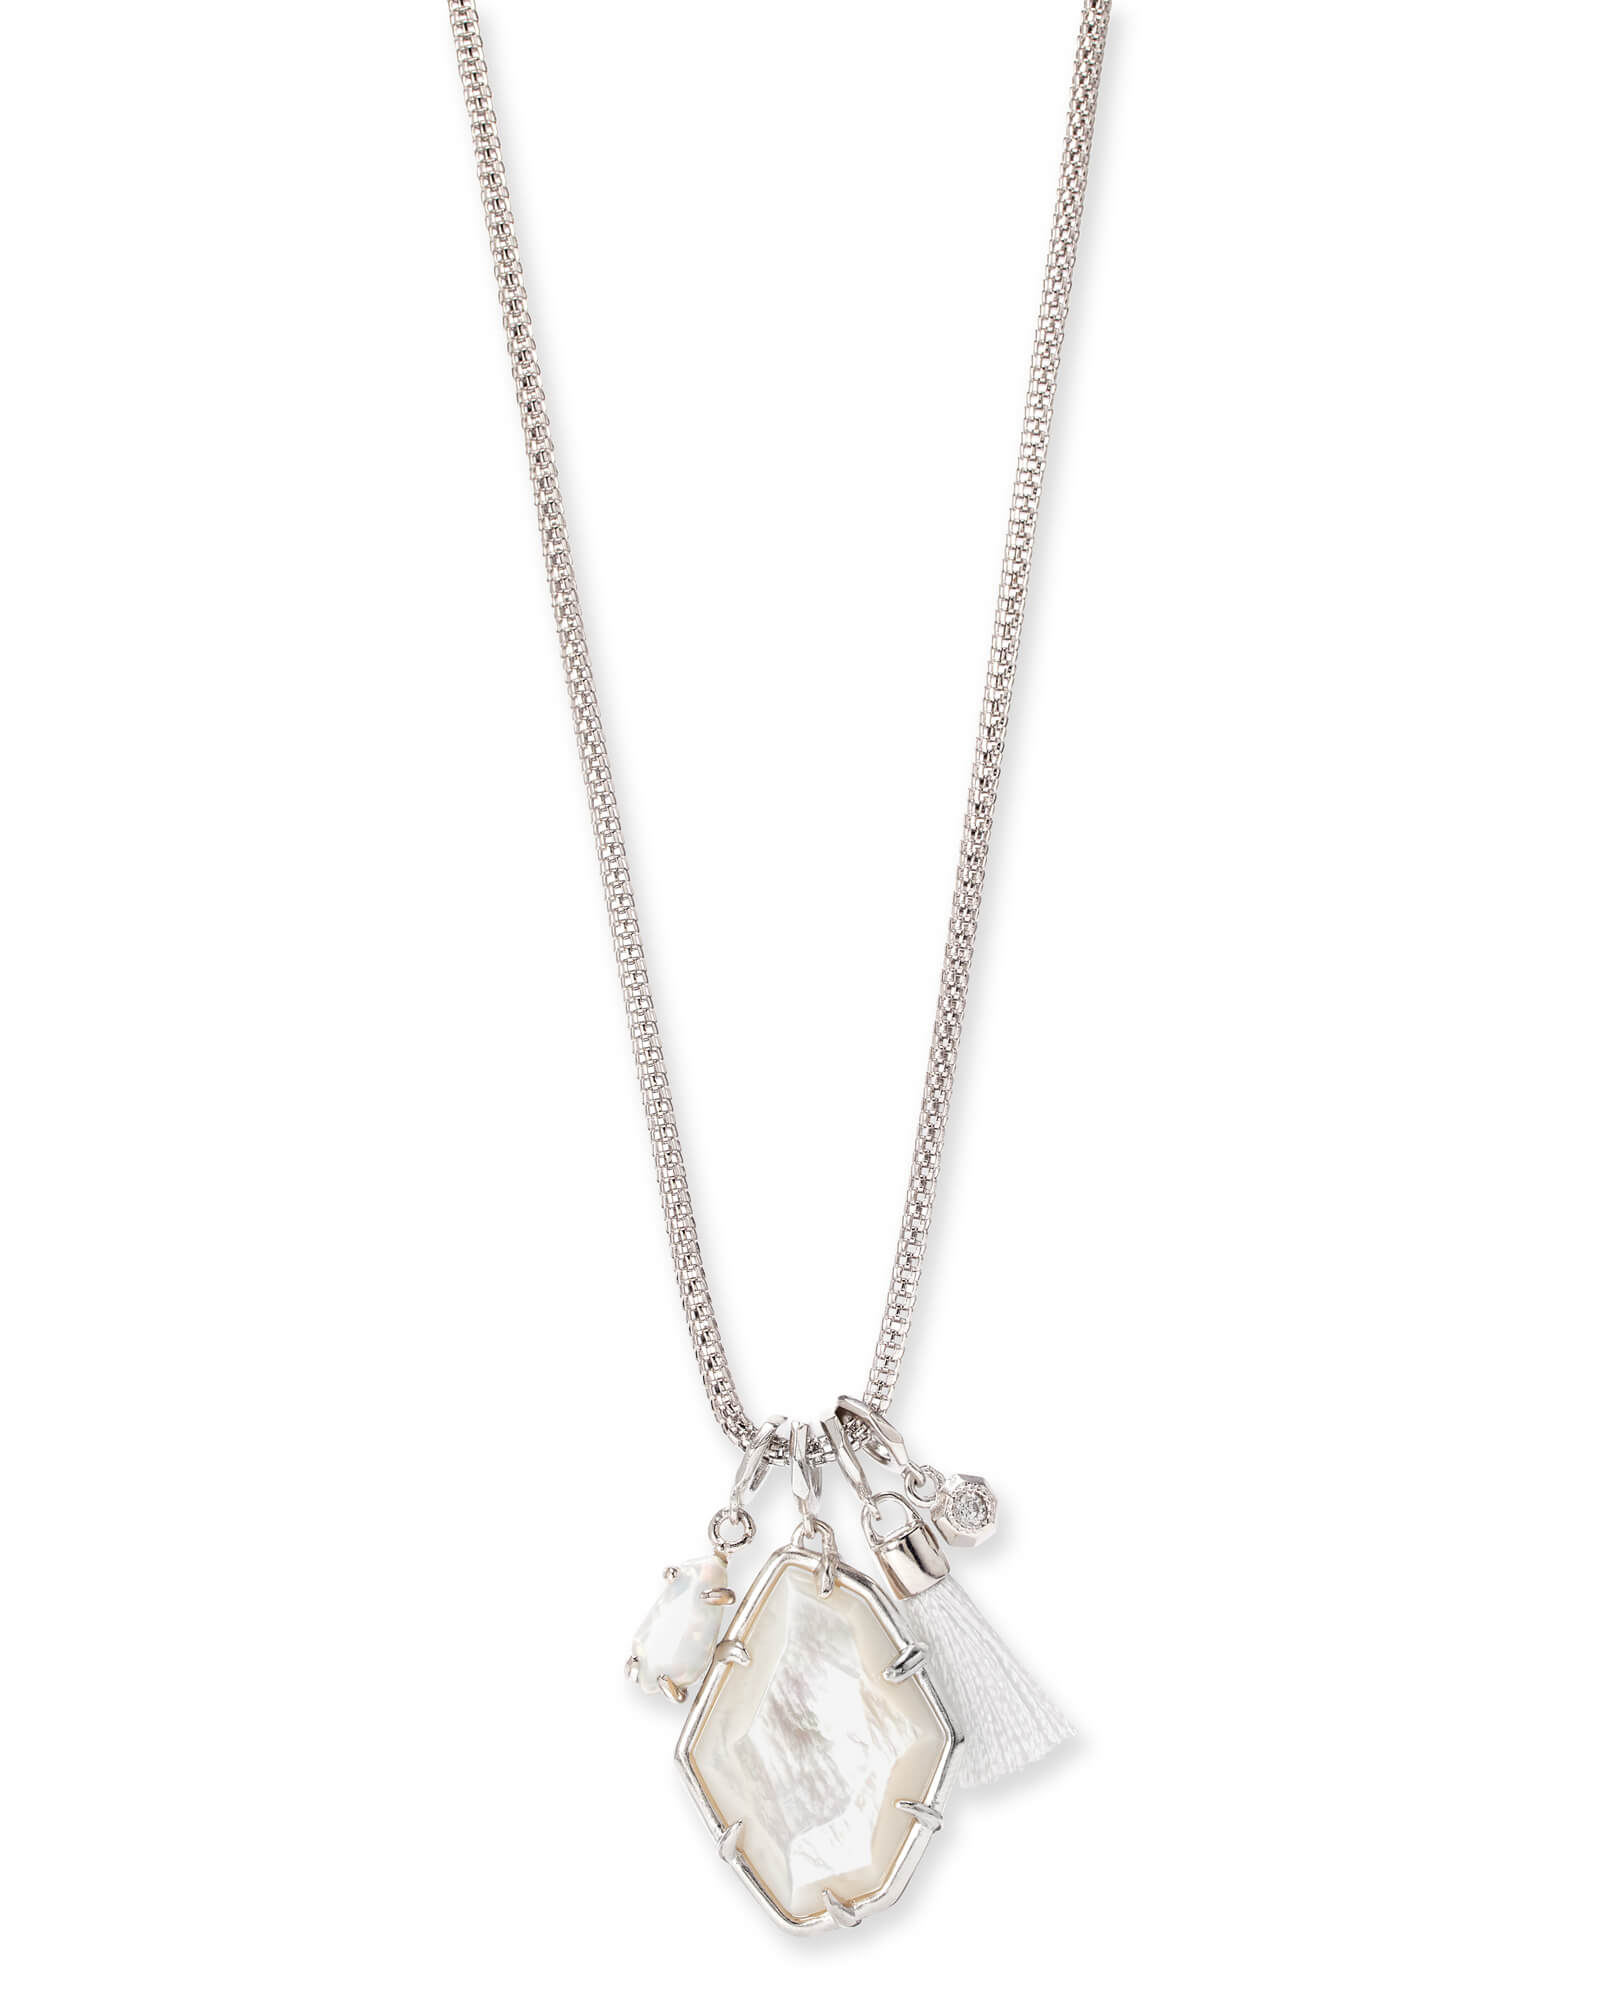 Hailey Silver Long Pendant Necklace In Ivory Mother Of Pearl by Kendra Scott